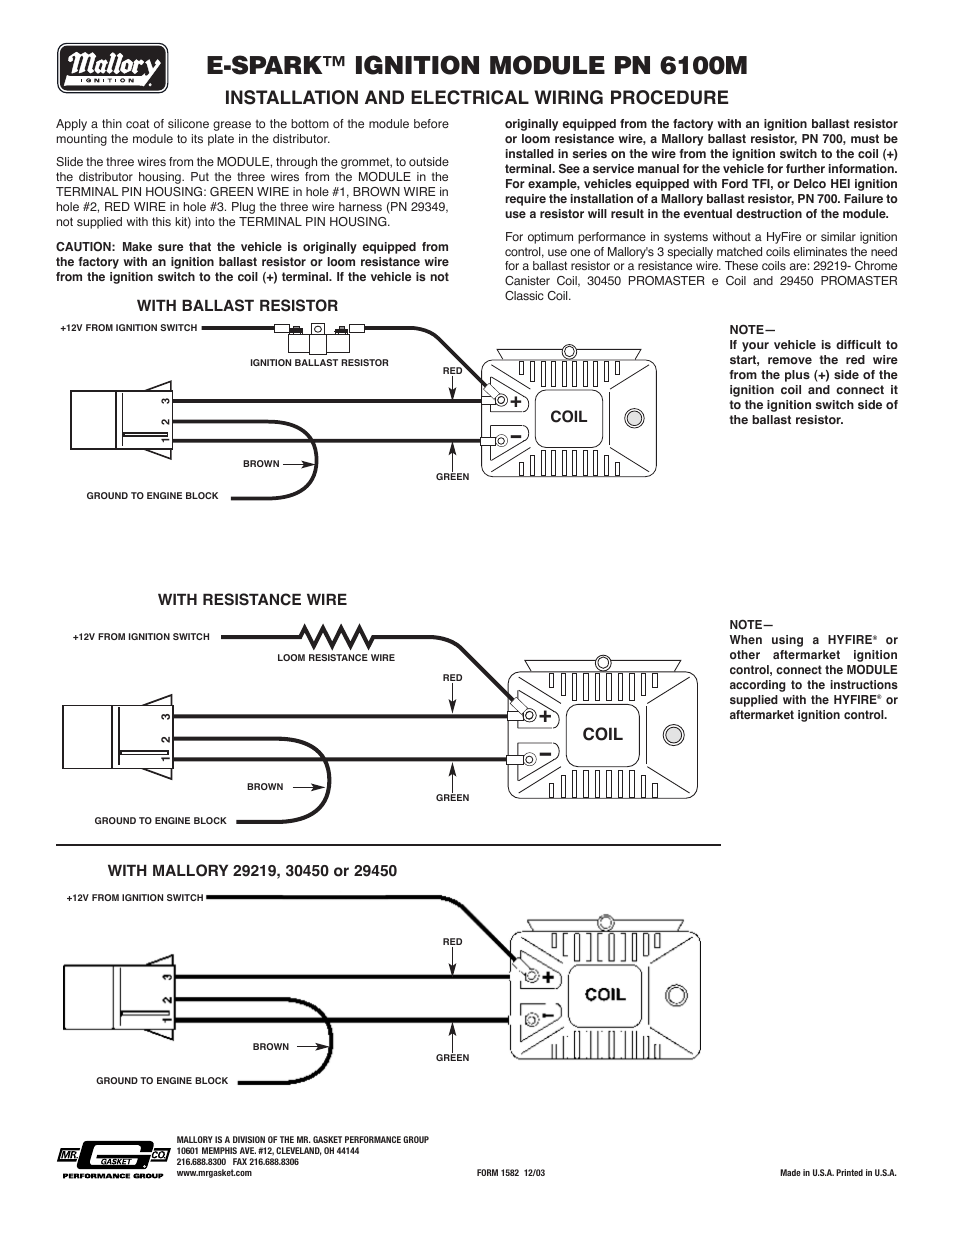 Mallory E Spark Wiring Diagram Reinvent Your Hei Ignition Coil Module 6100m User Manual Rh Manualsdir Com High Fire Msd